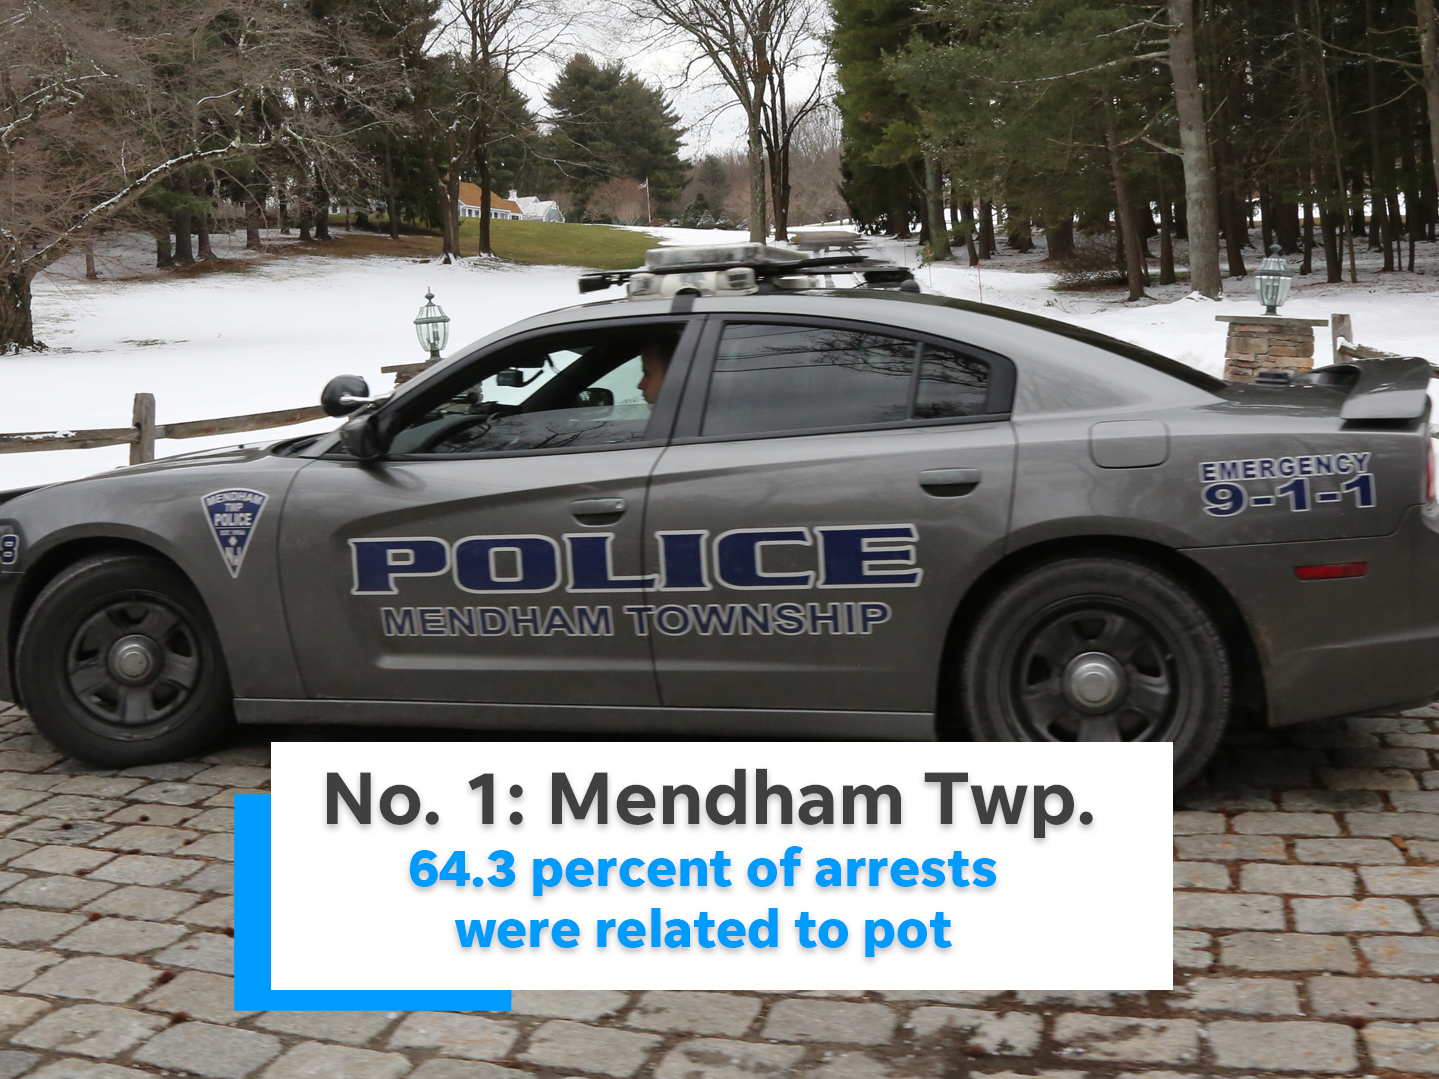 64.3 percent of Mendham Township's arrests were related to marijuana.